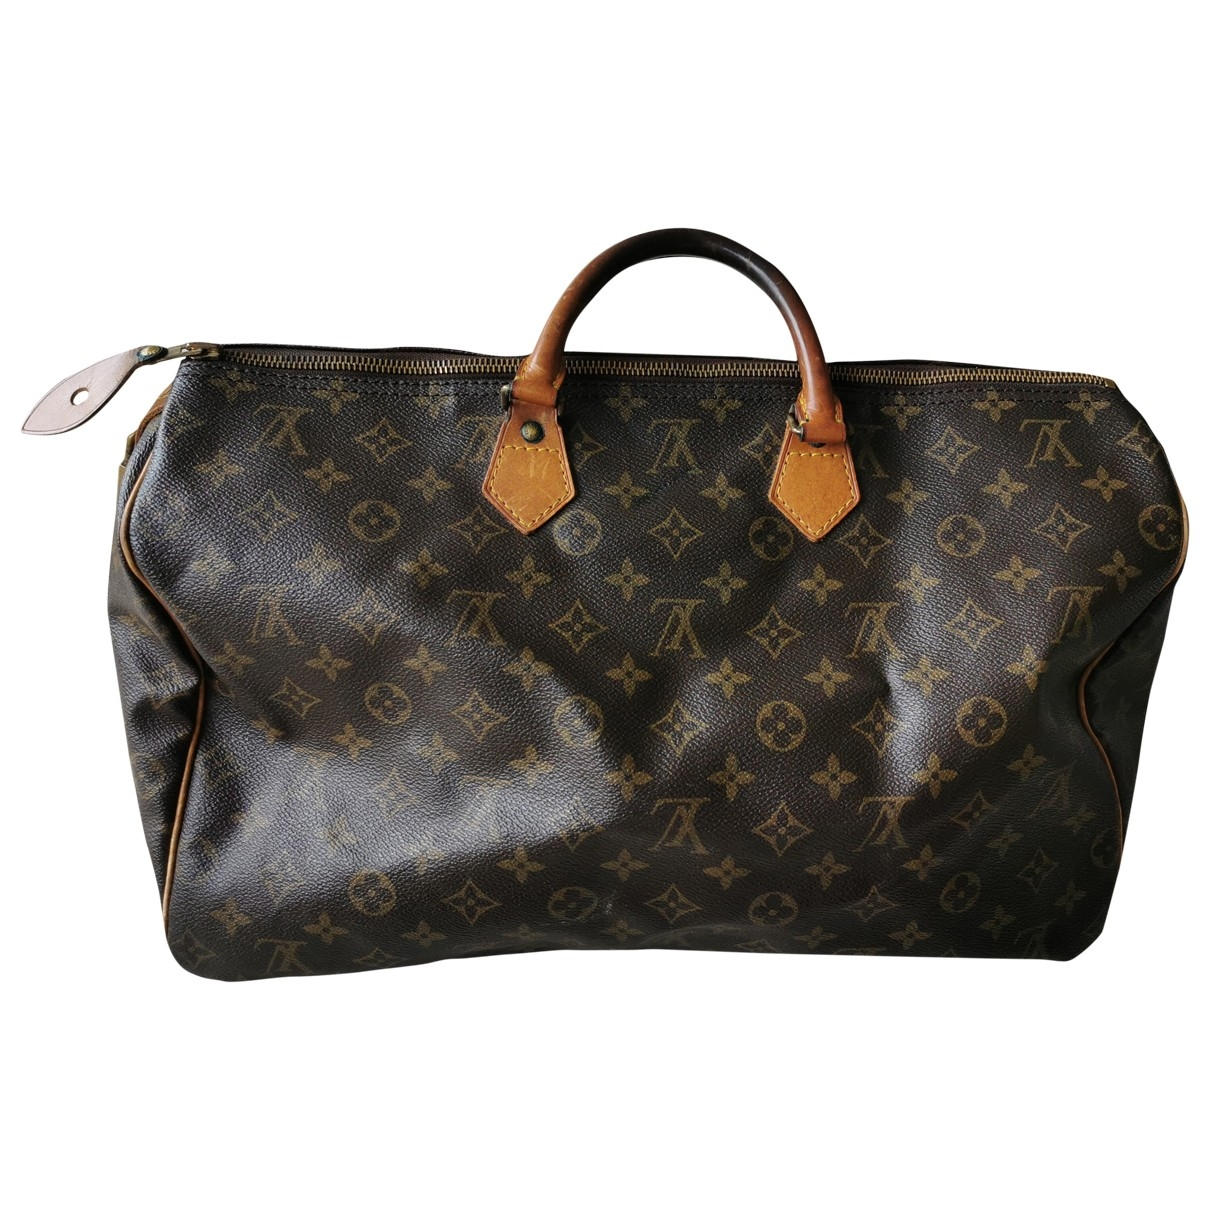 Louis Vuitton Speedy Brown Leather handbag for Women \N